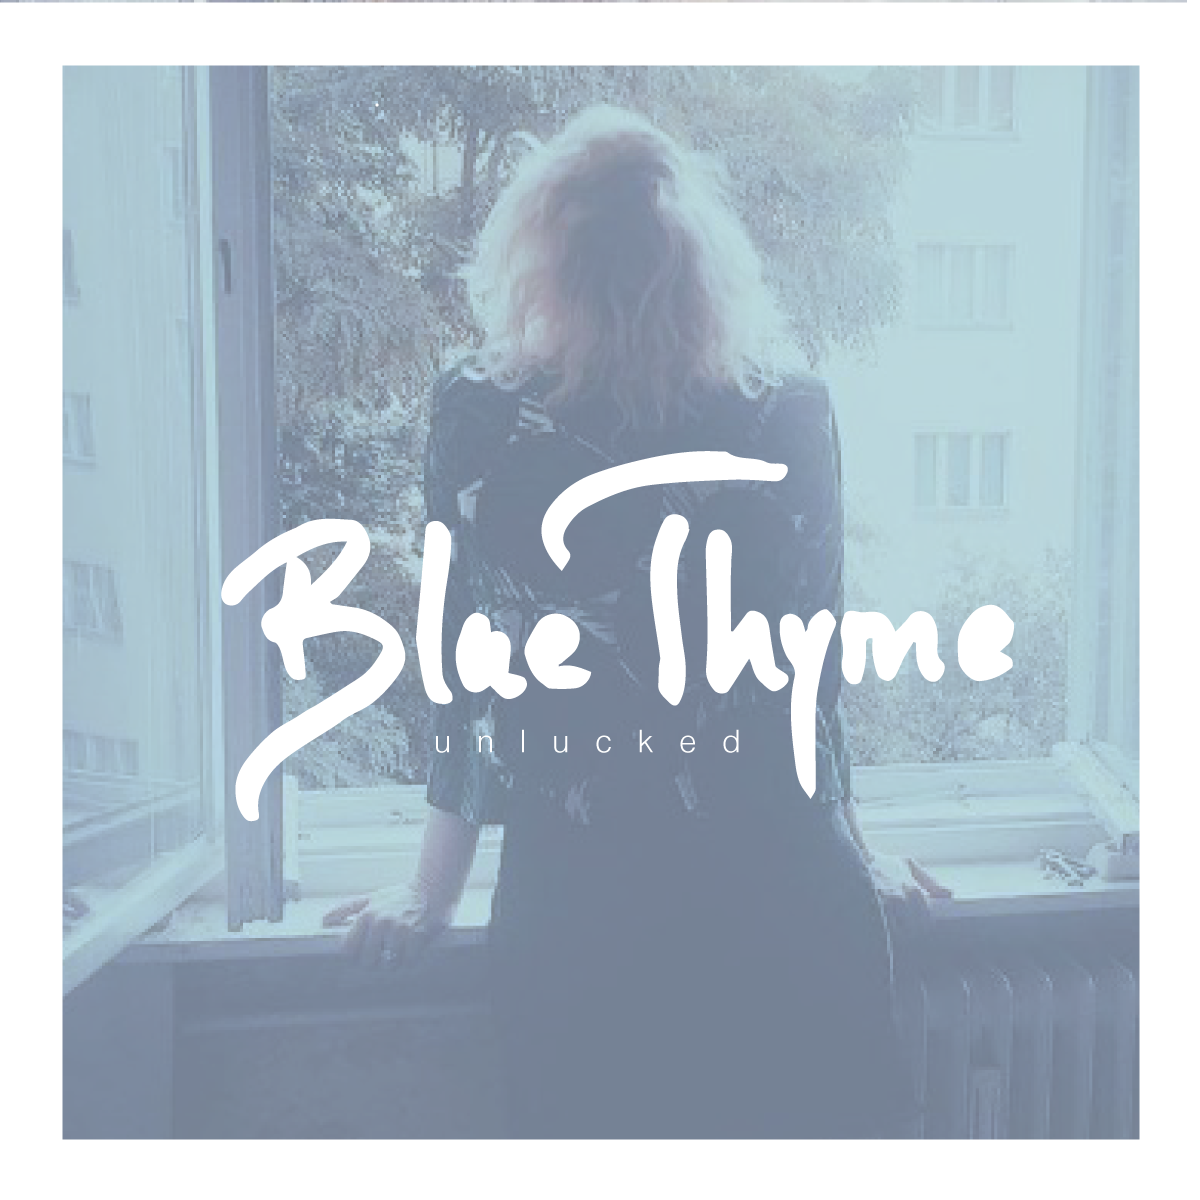 Blue Thyme - Unlucked